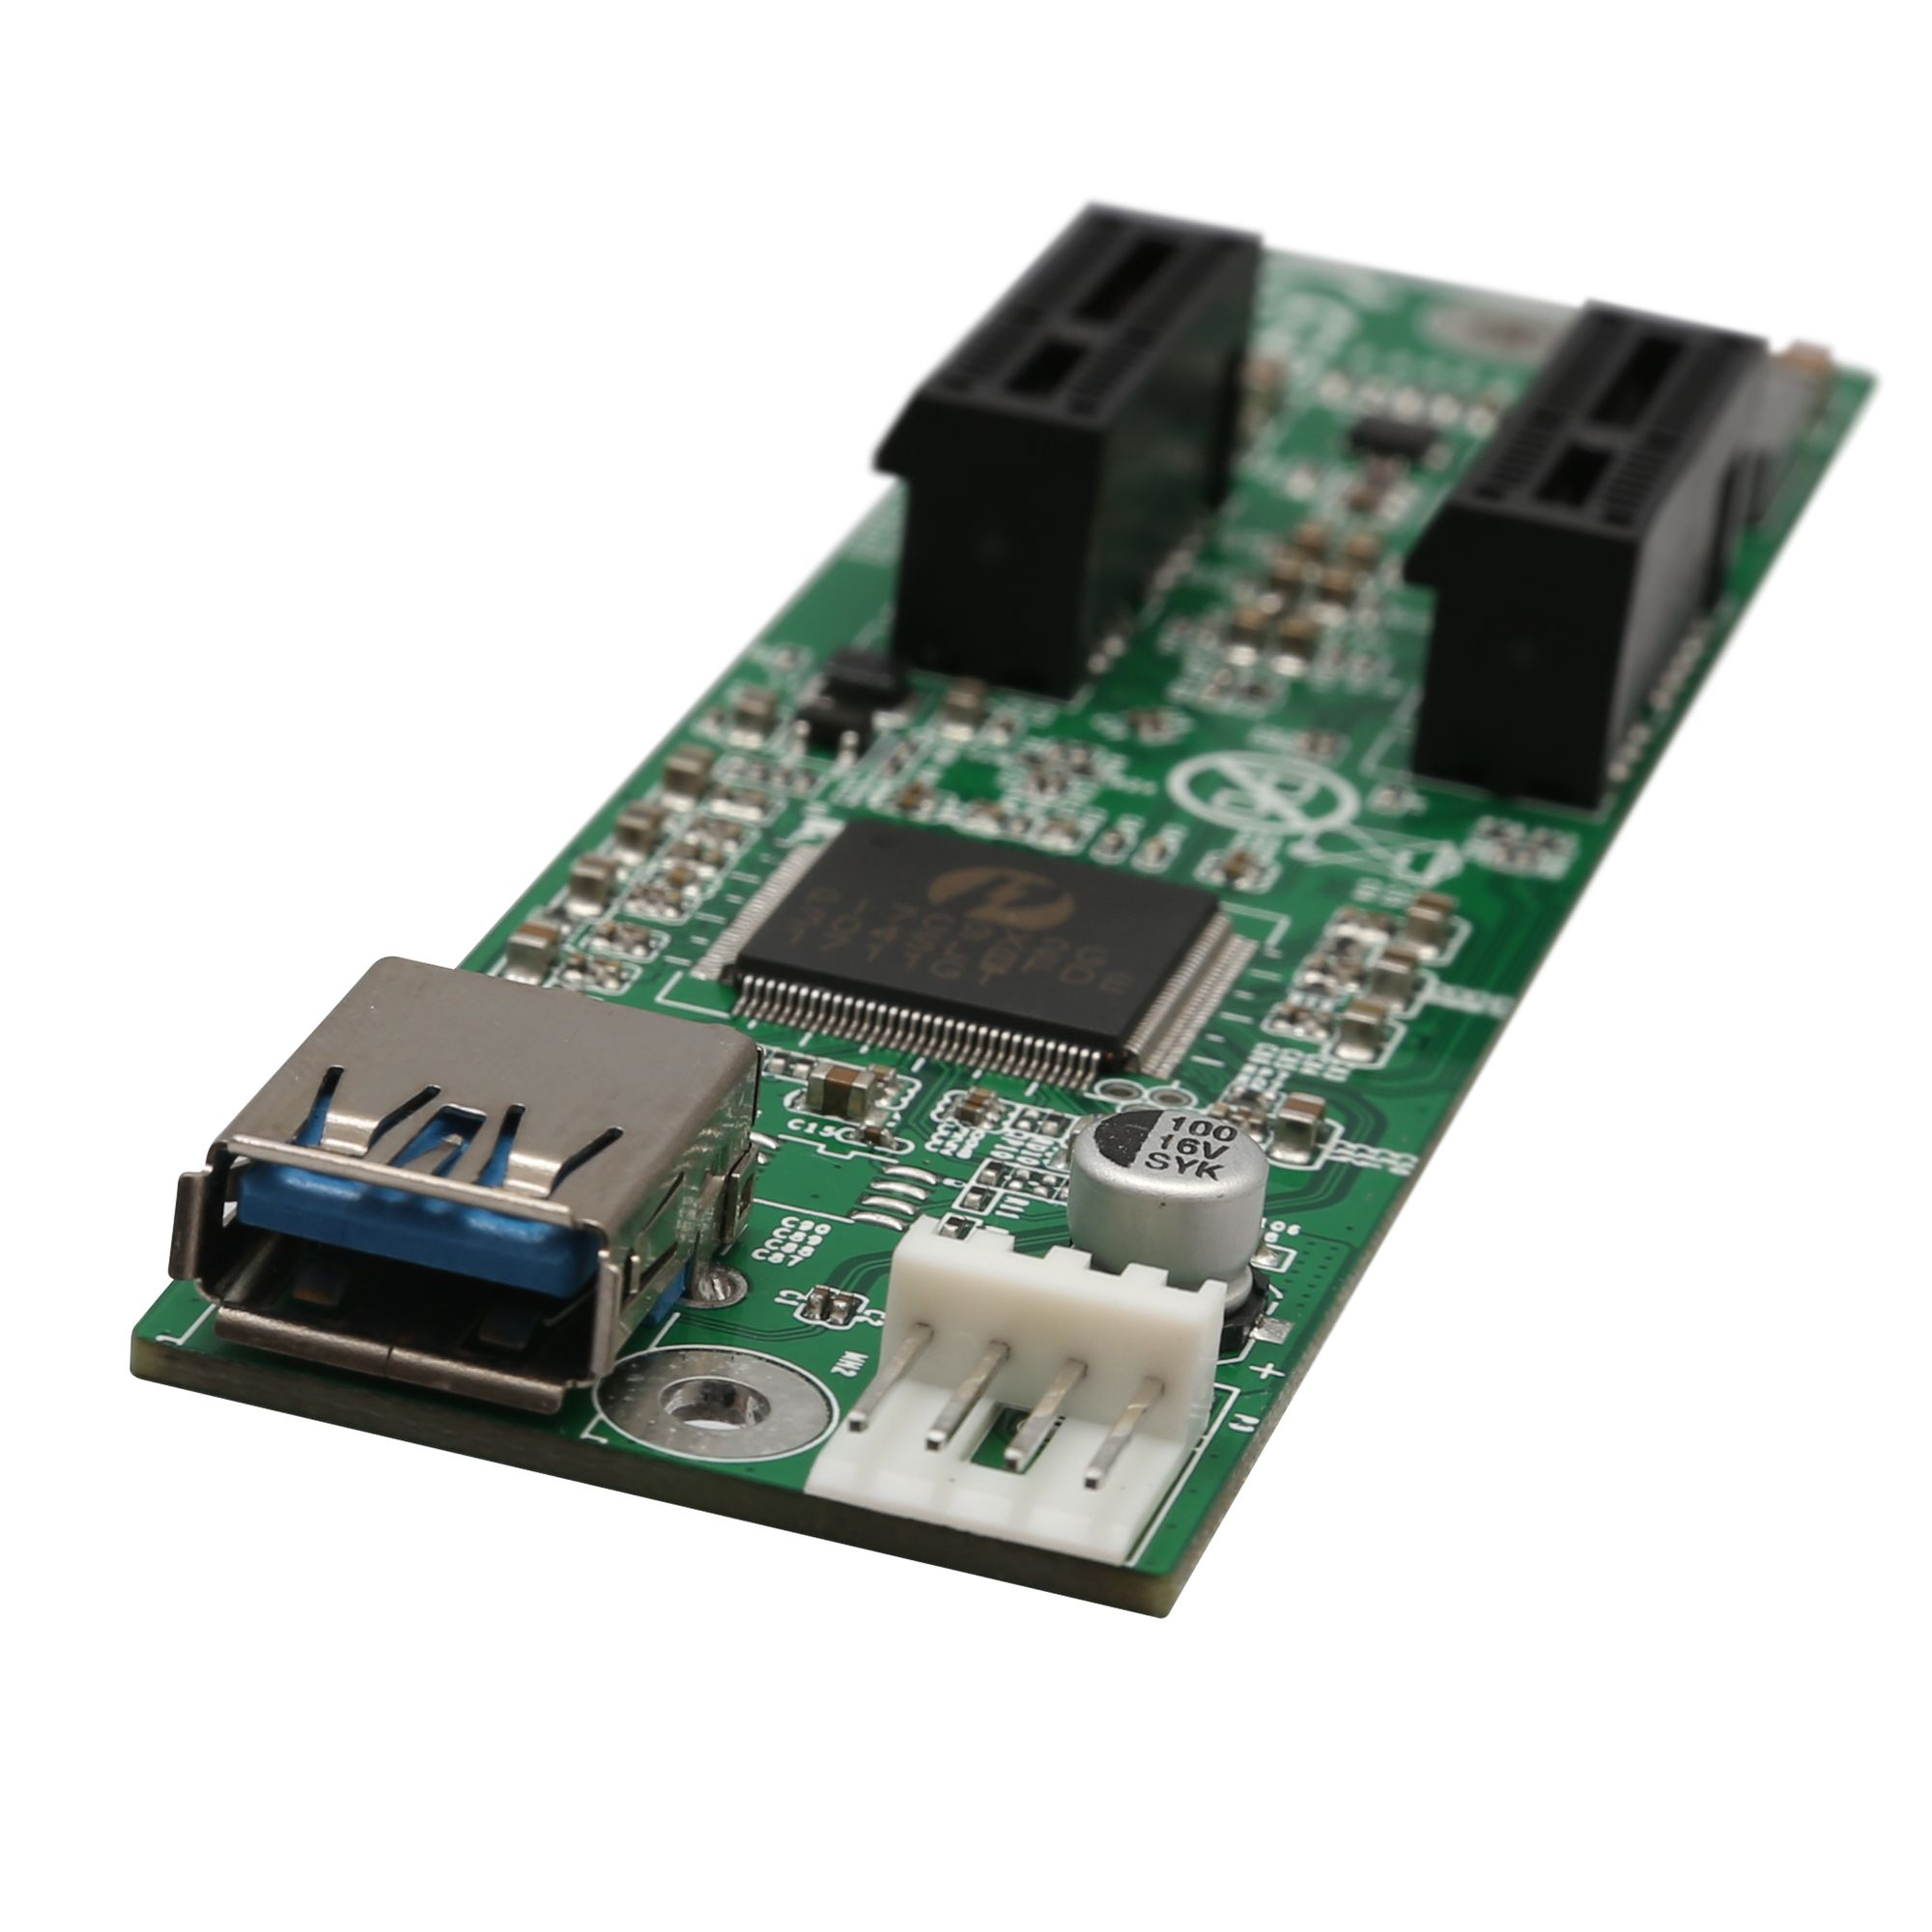 IOCrest 1 to 2 Ports PCI-E x1 Extension Board Switch Multiplier Hub Riser Card with USB 3.0 Cable